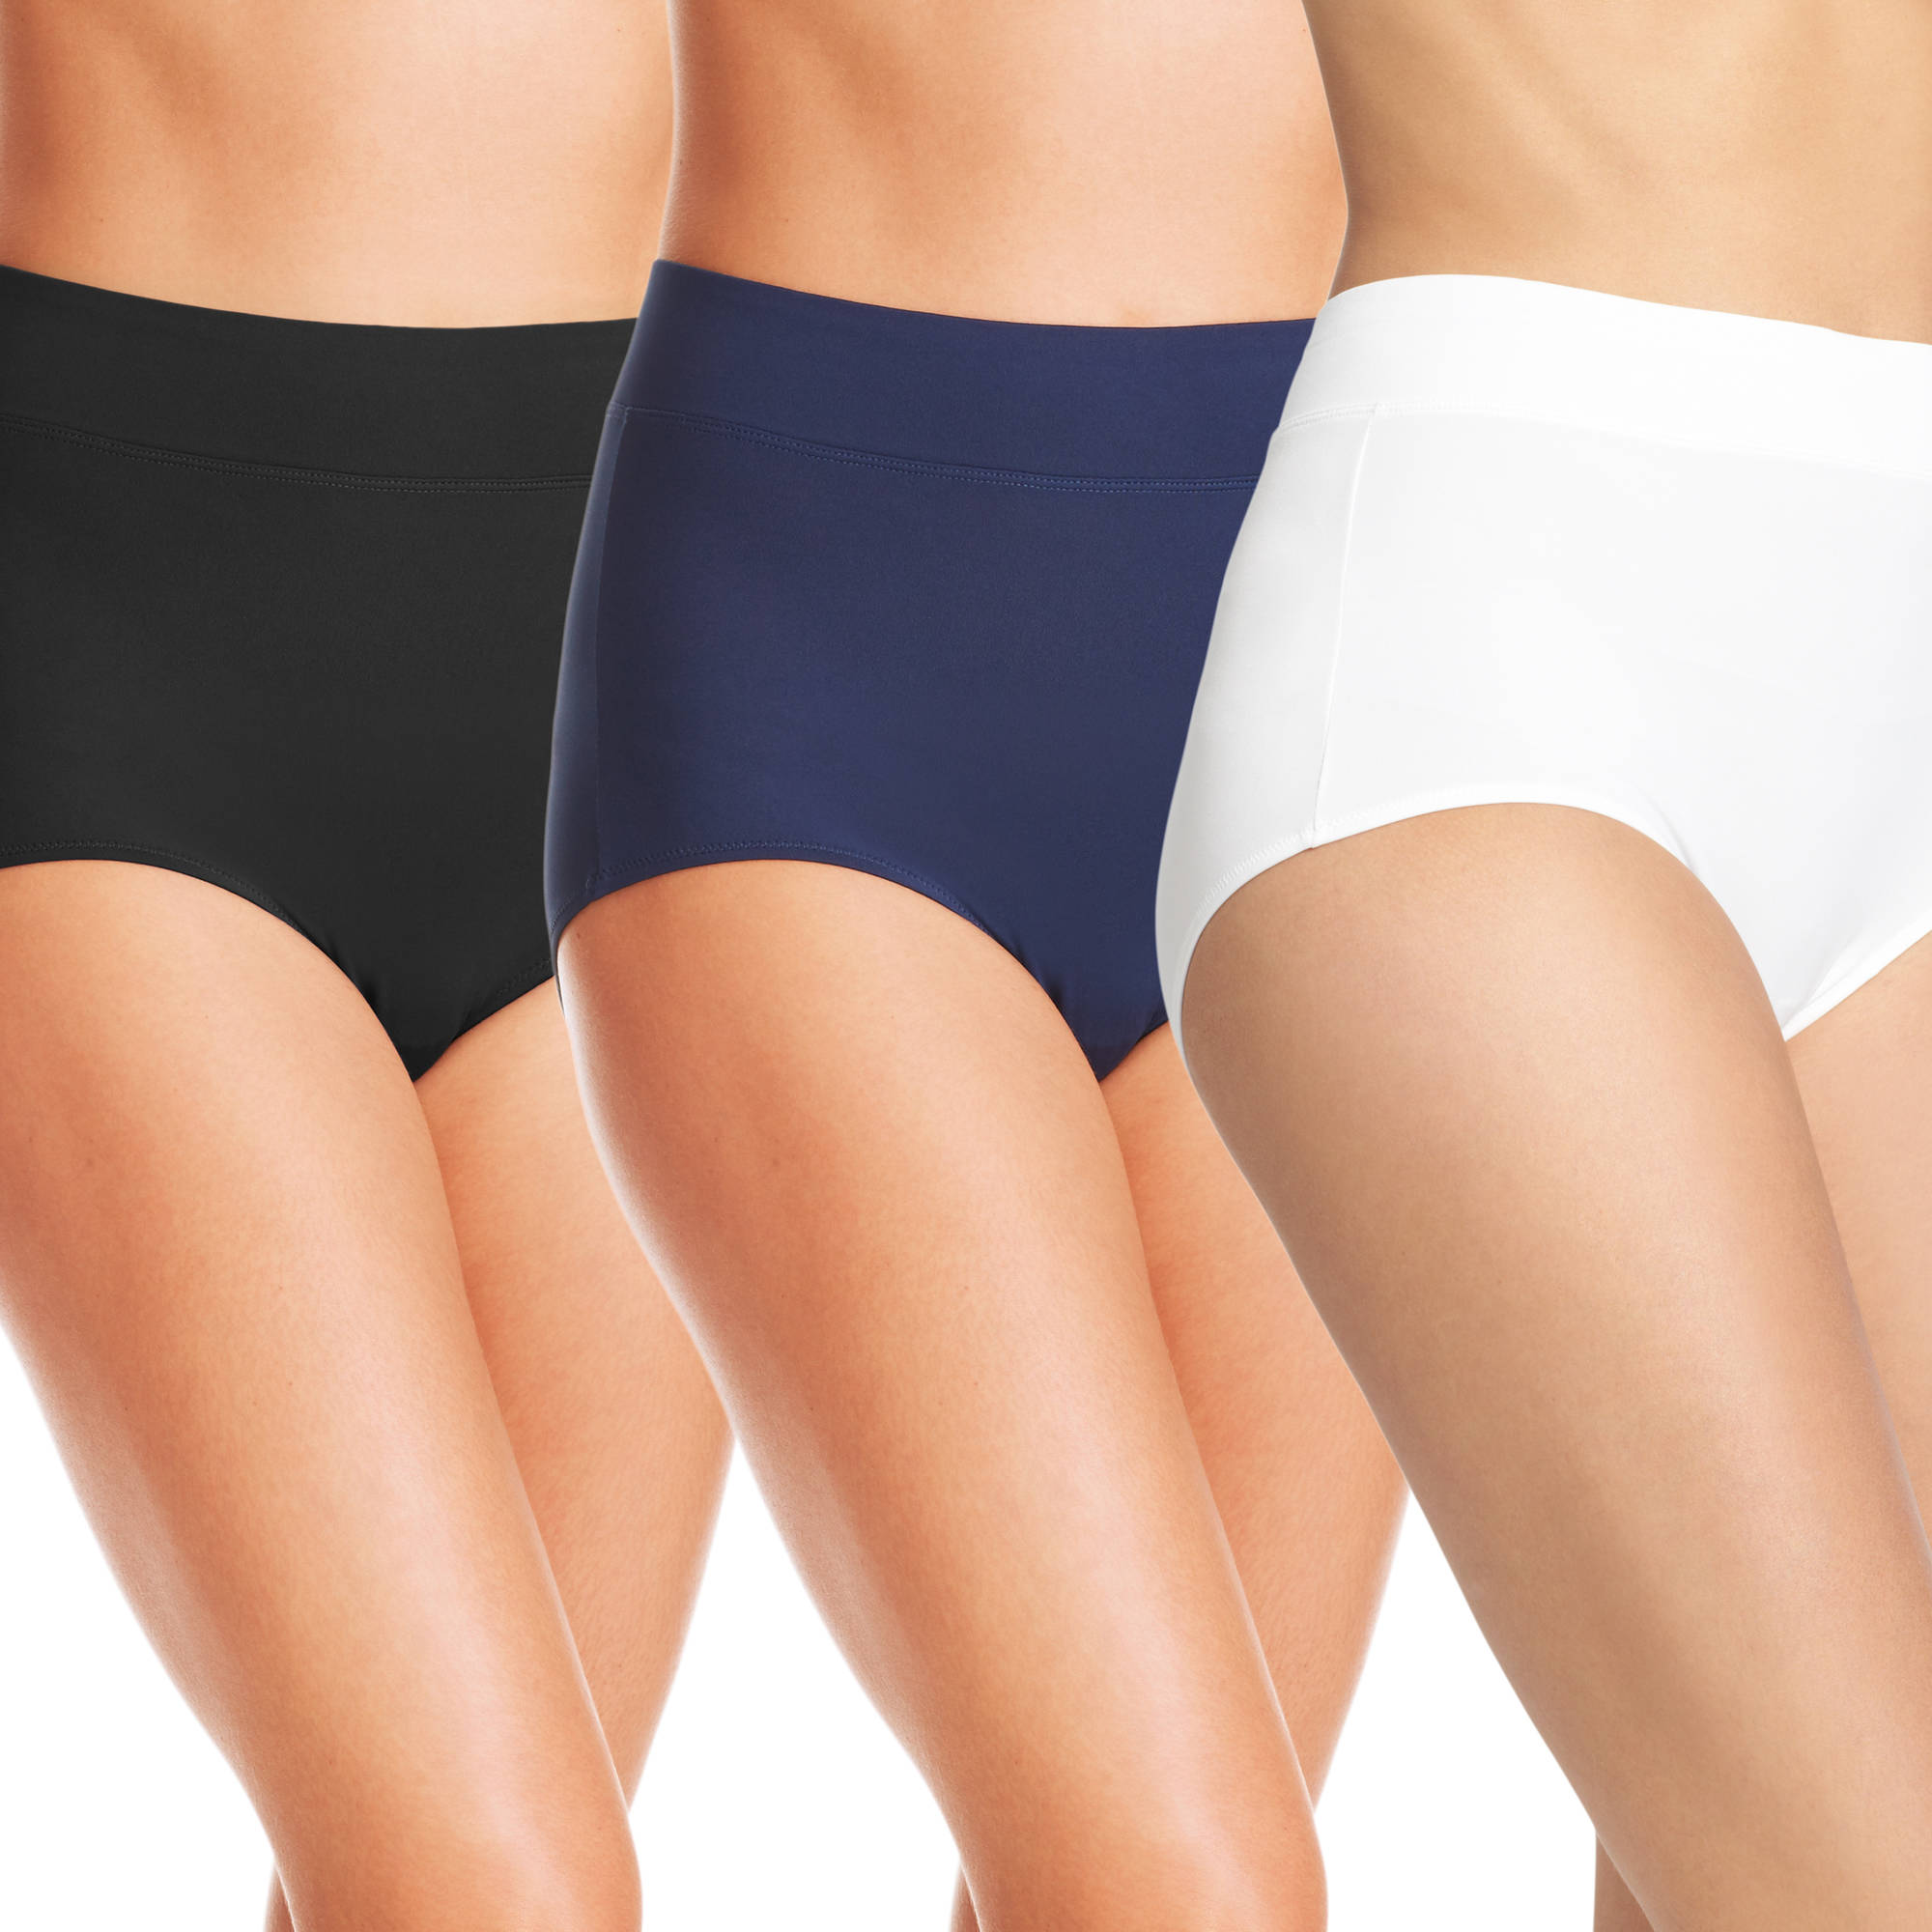 Blissful Benefits by Warner's No Muffin Top Brief Panties 3PK